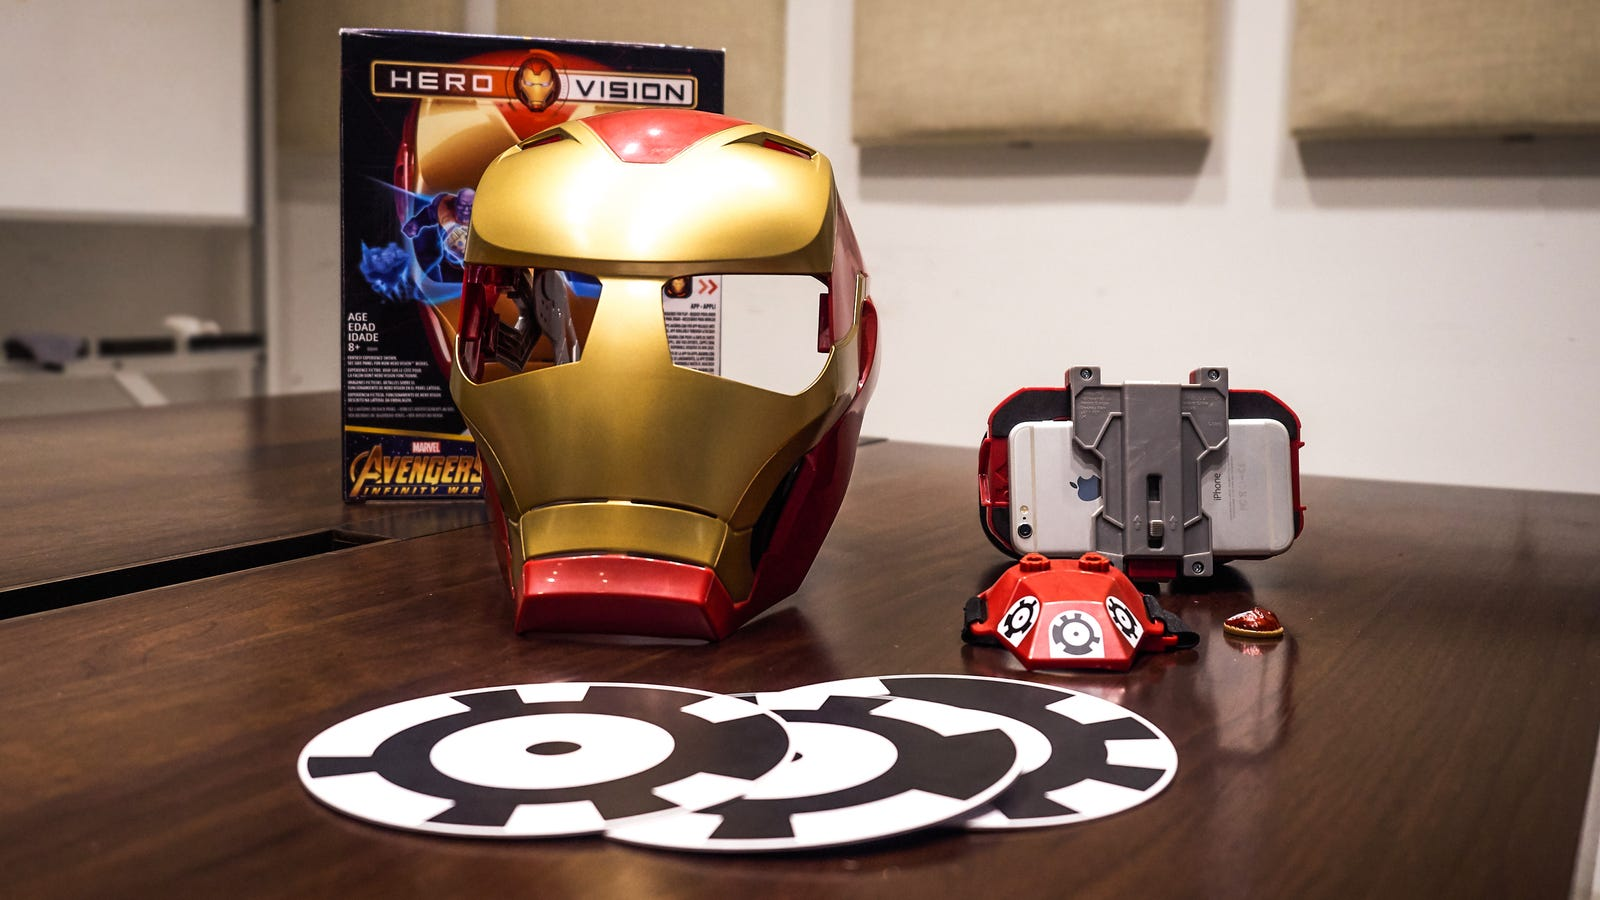 Hero Vision includes a mask, AR headset, three cardboard cutouts for positional tracking, one gauntlet, and a single Infinity Stone.